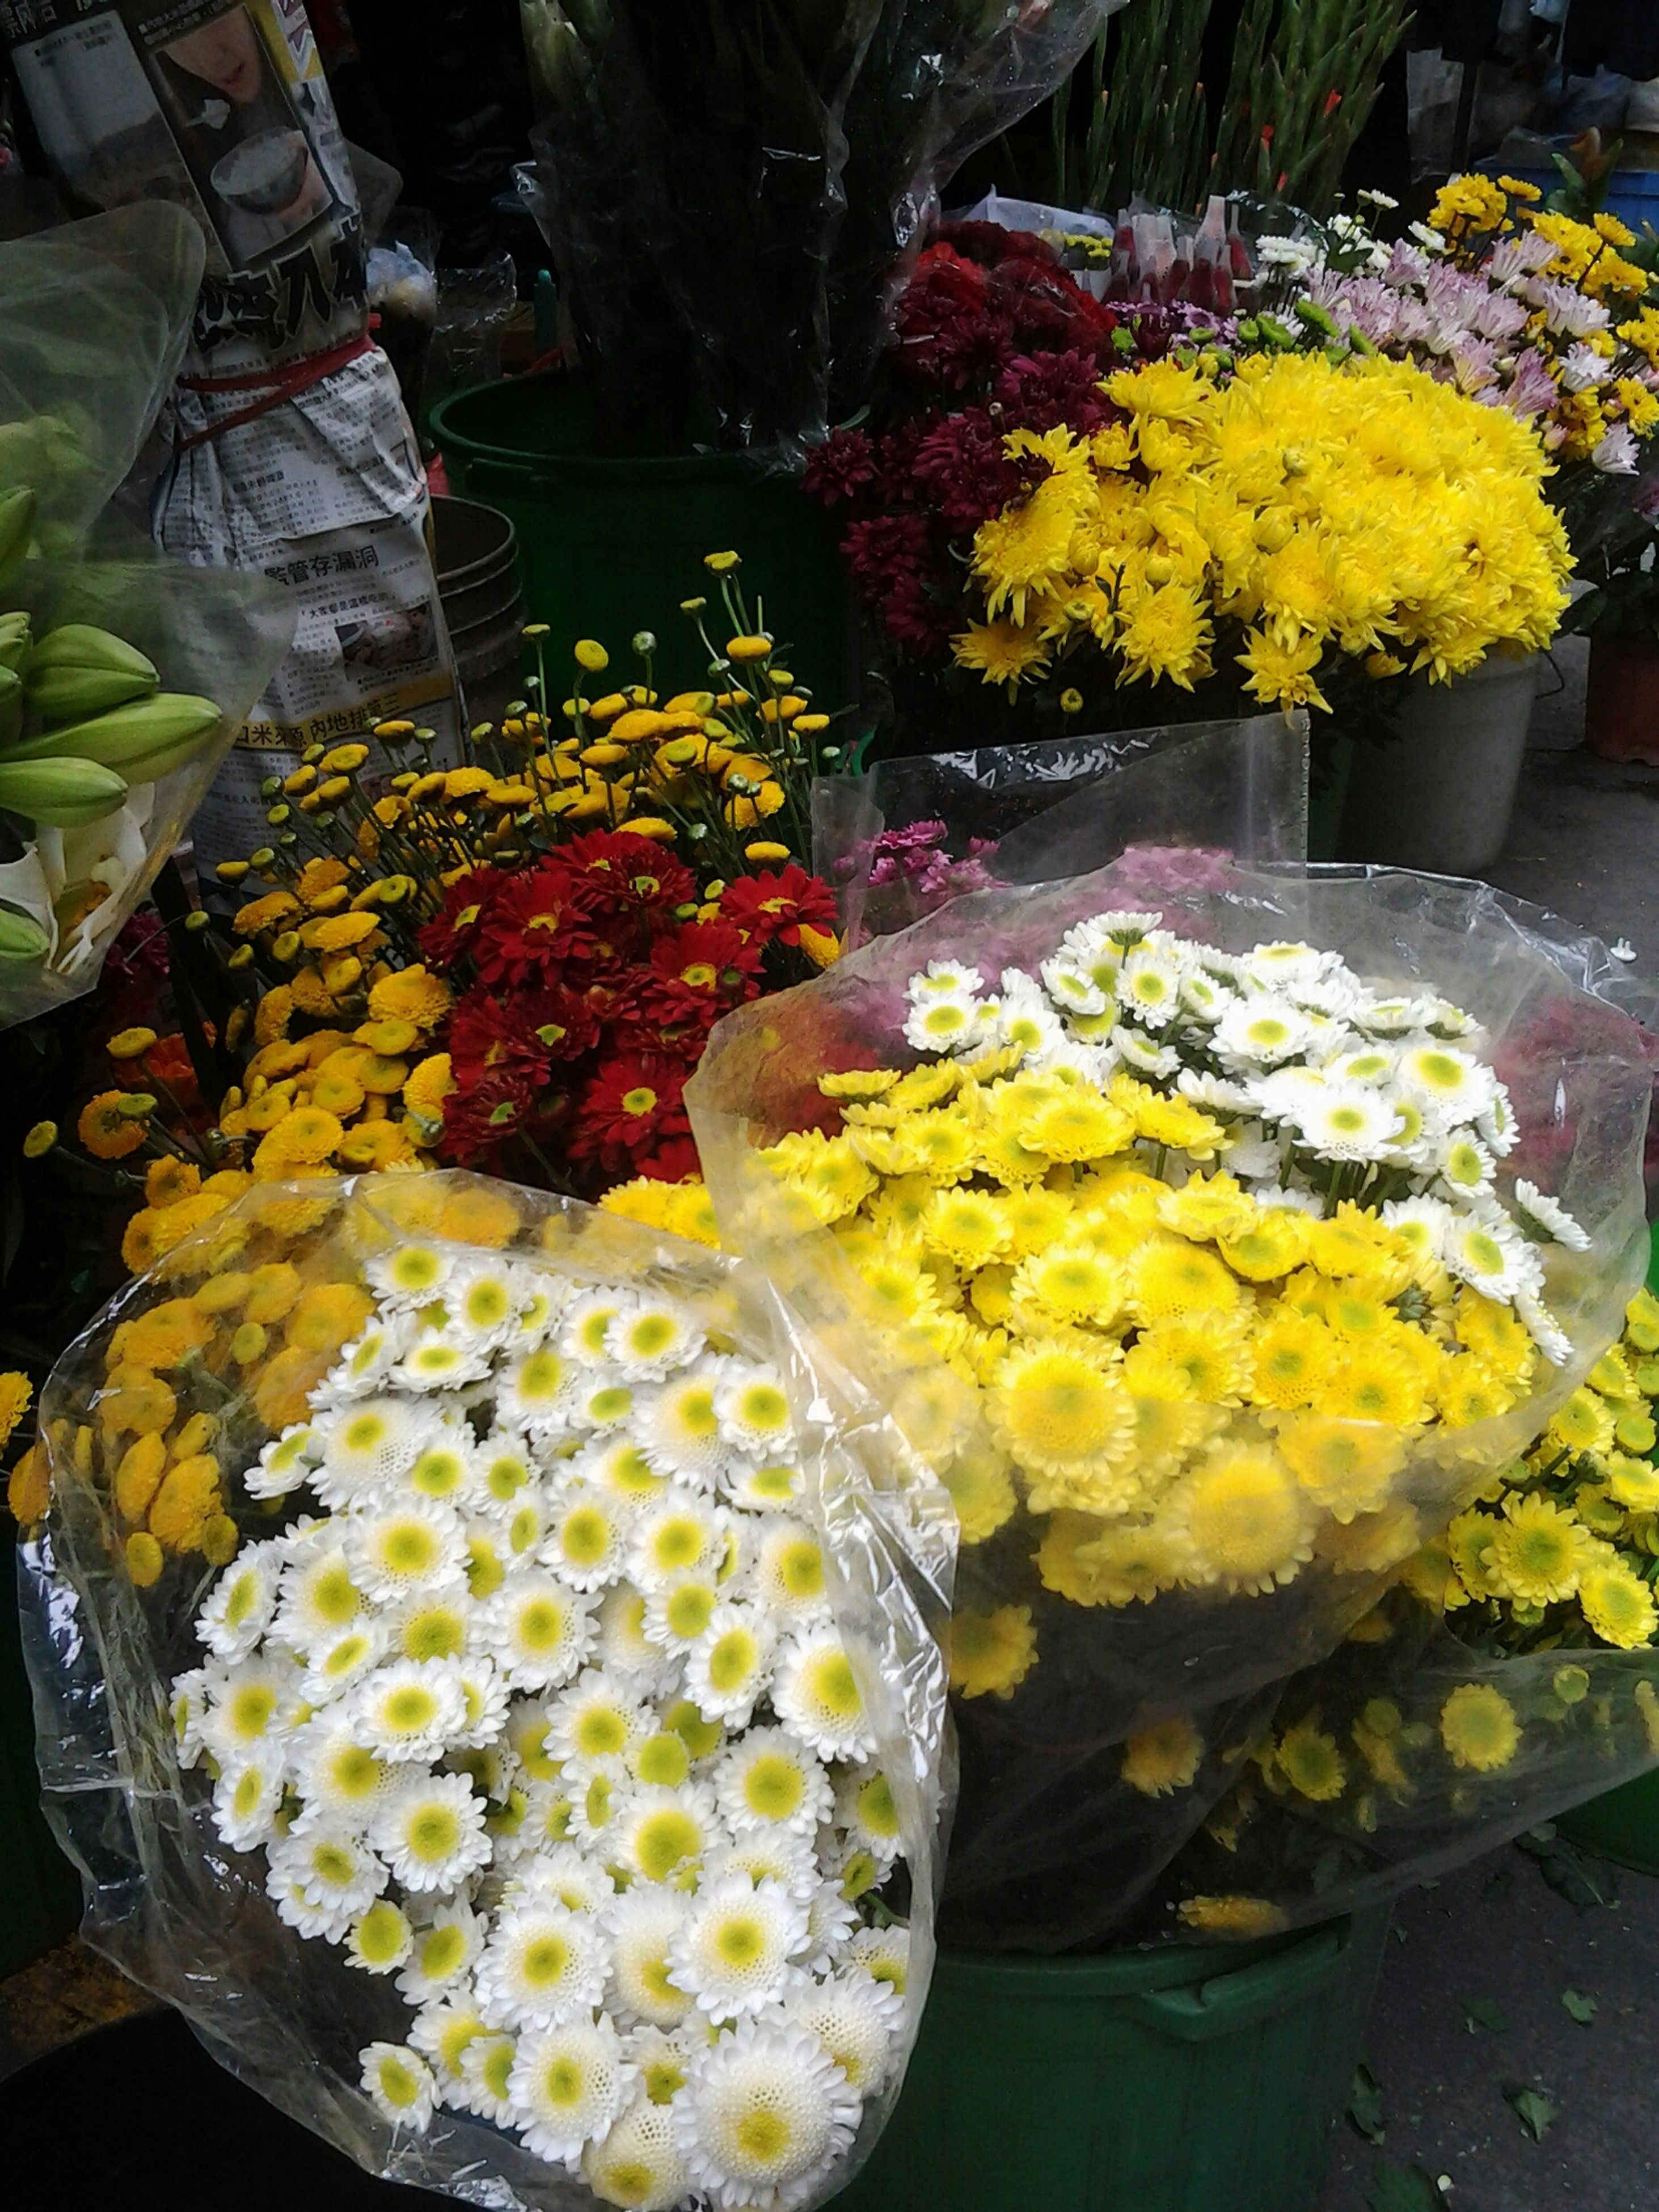 freshness, flower, yellow, fragility, indoors, food and drink, high angle view, variation, petal, food, plant, beauty in nature, nature, growth, healthy eating, vase, table, flower head, no people, close-up